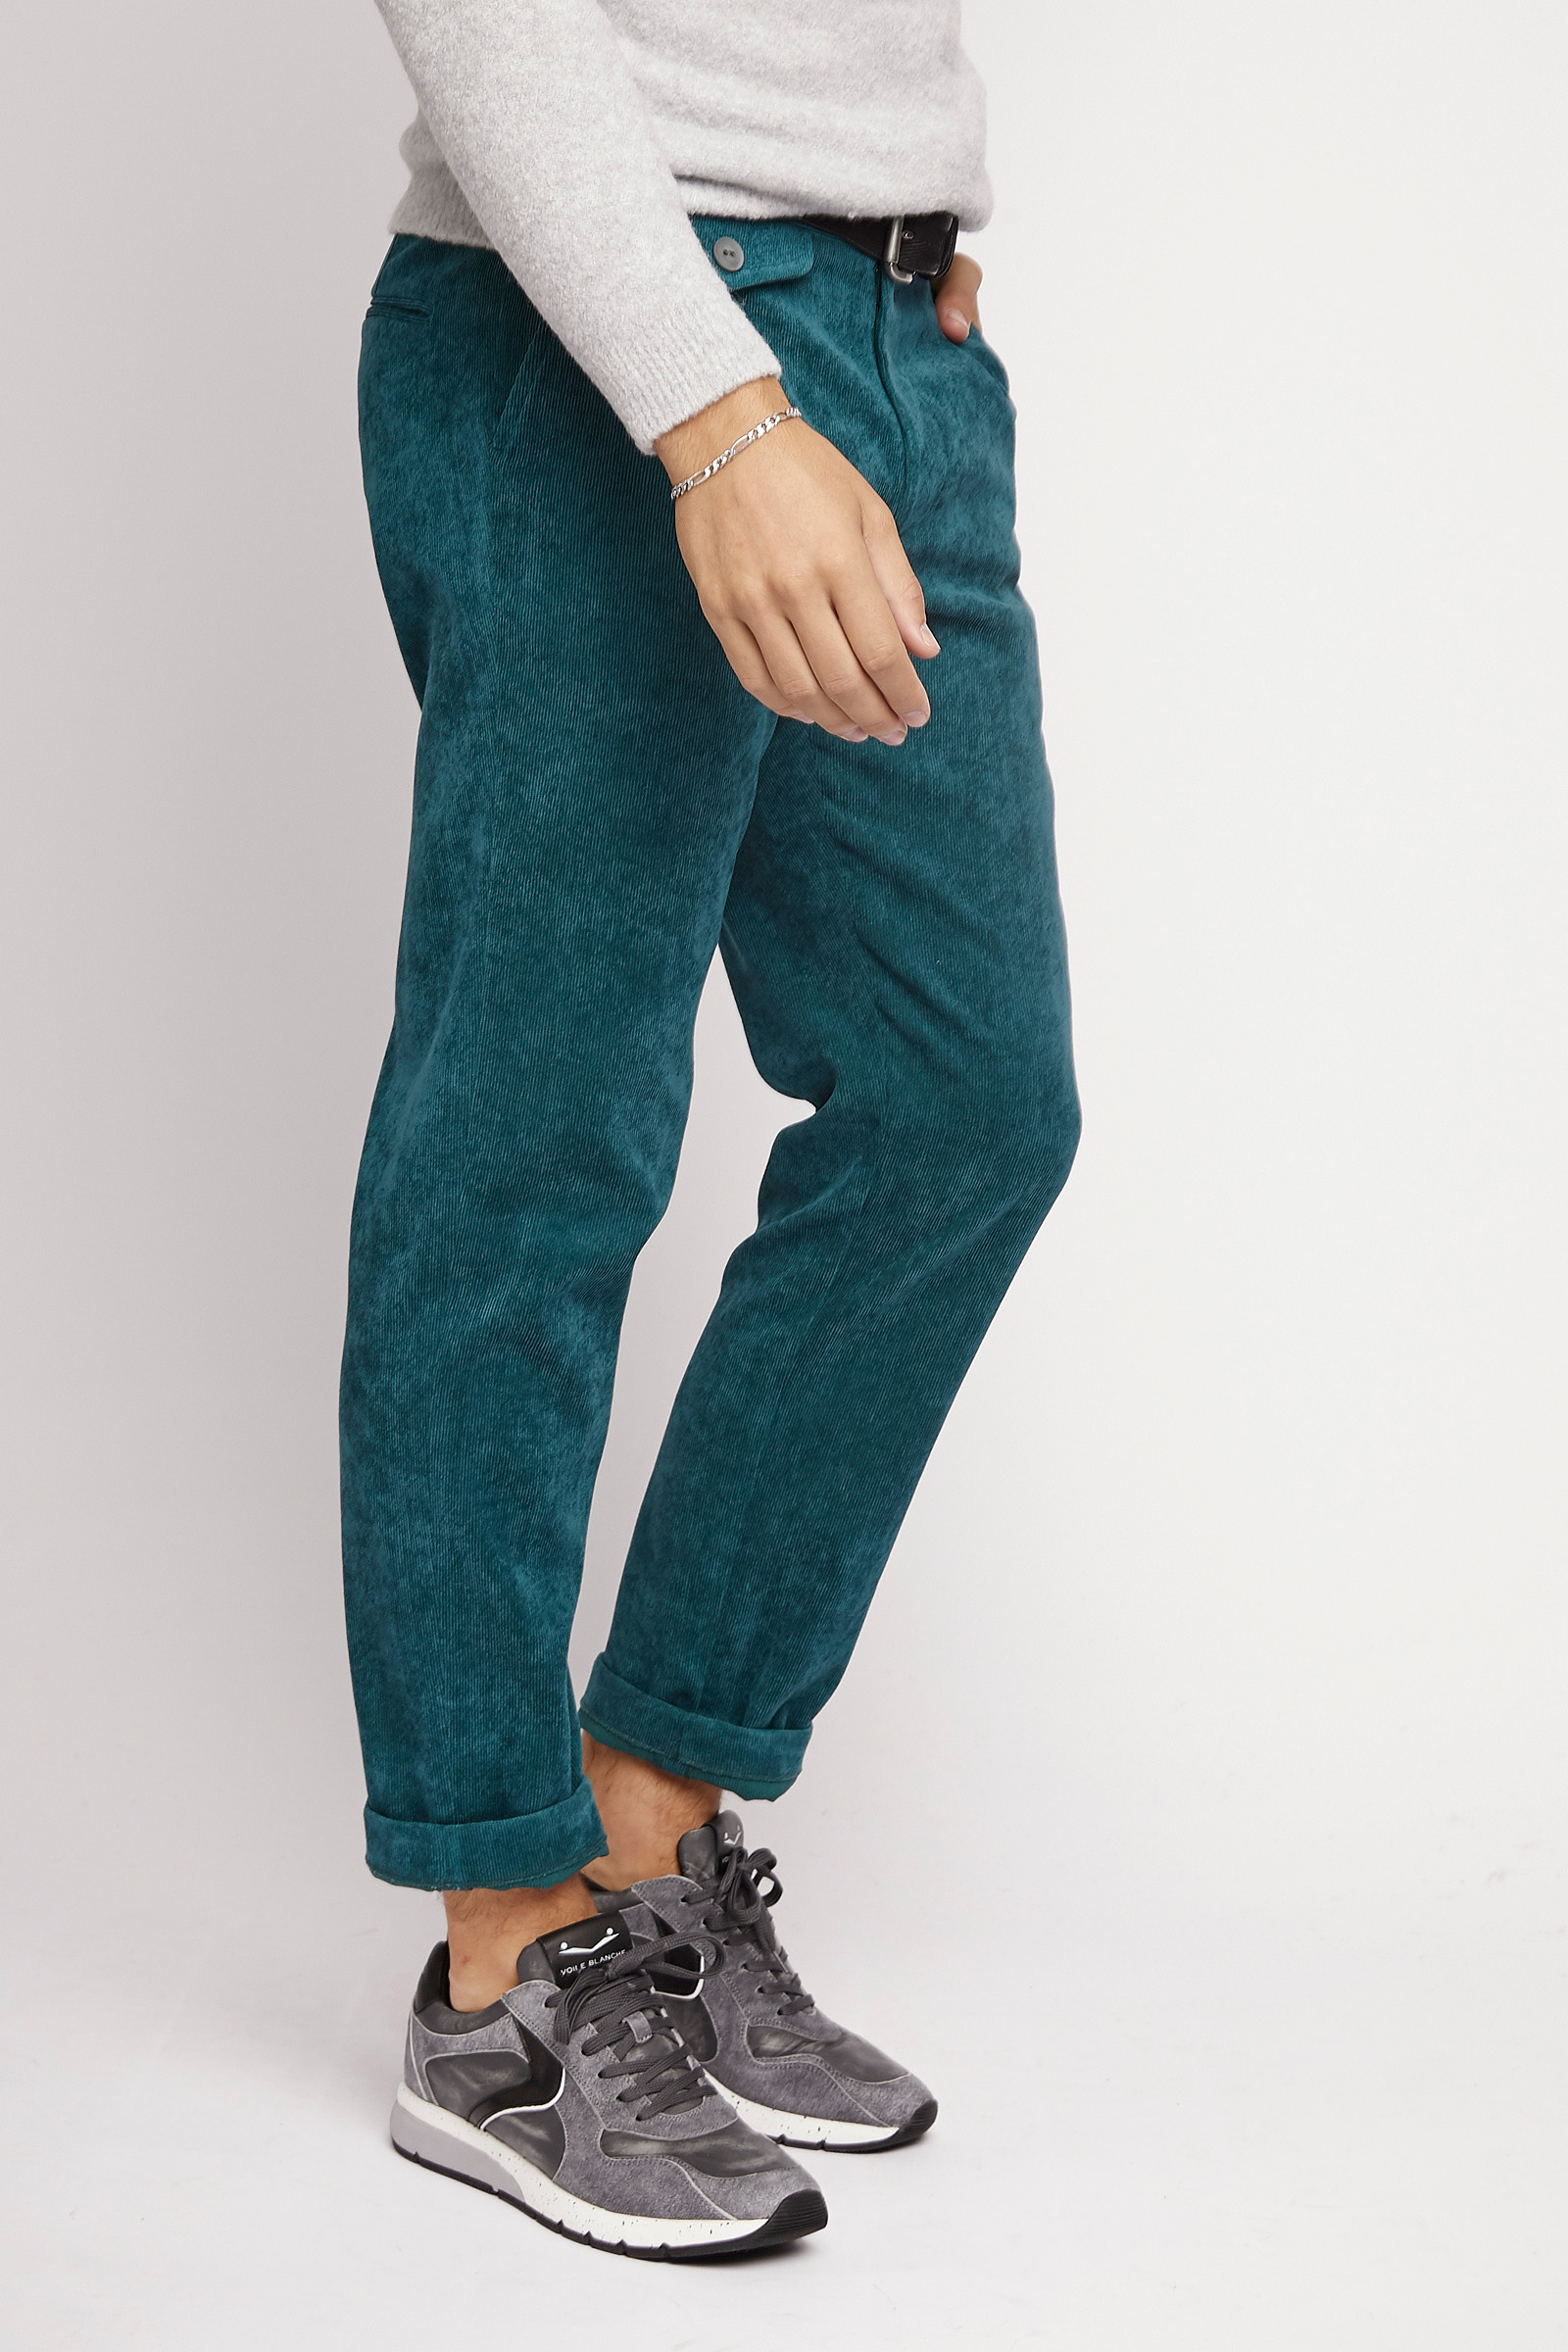 Turquoise Corduroy Trousers lateral